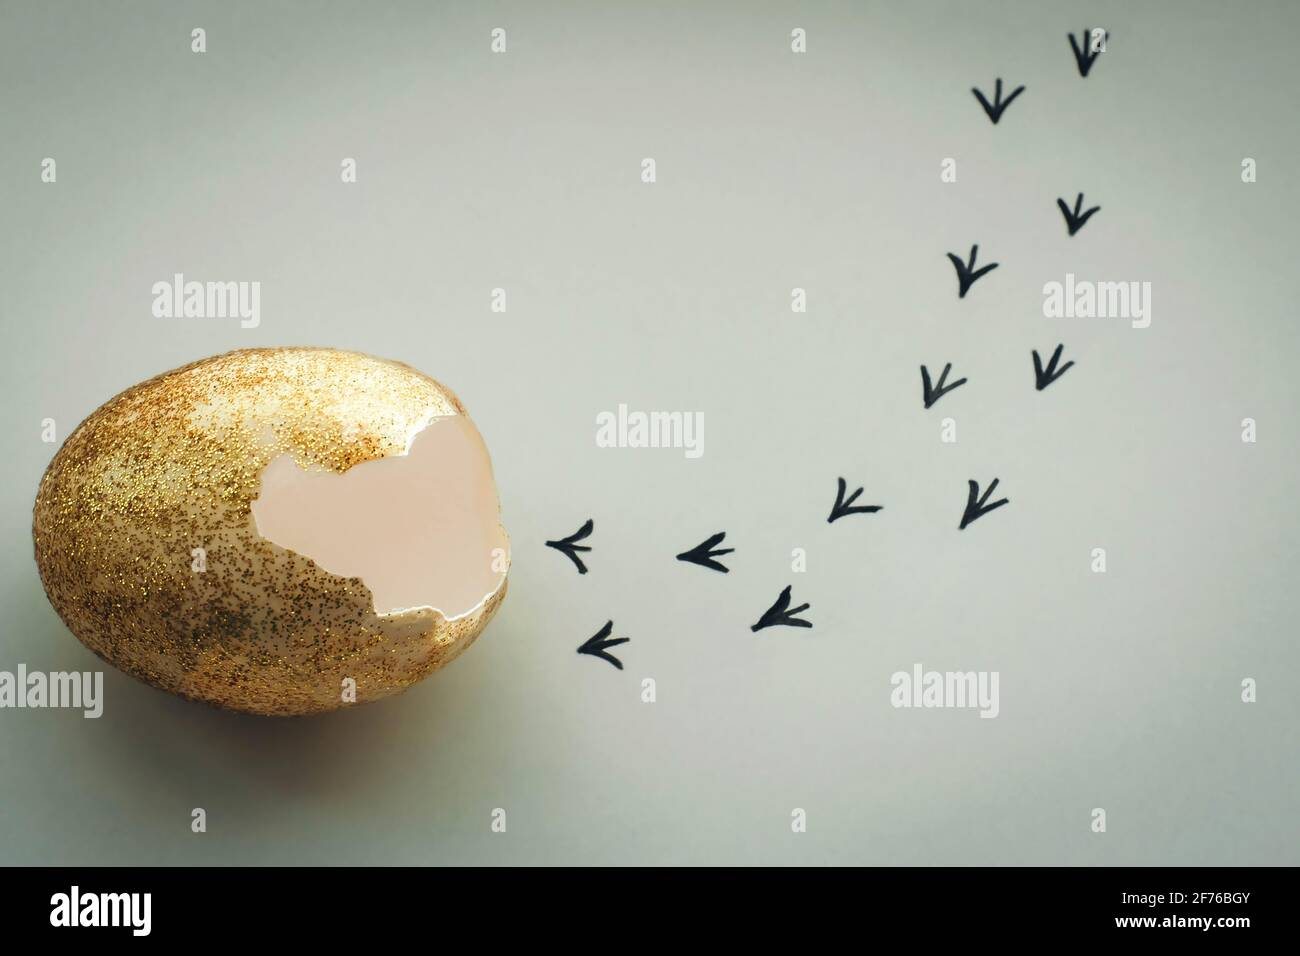 Footprints from an egg shell. First steps of a chick on a white isolated background. Concept of way out of the comfort zone, a new life, progress Stock Photo